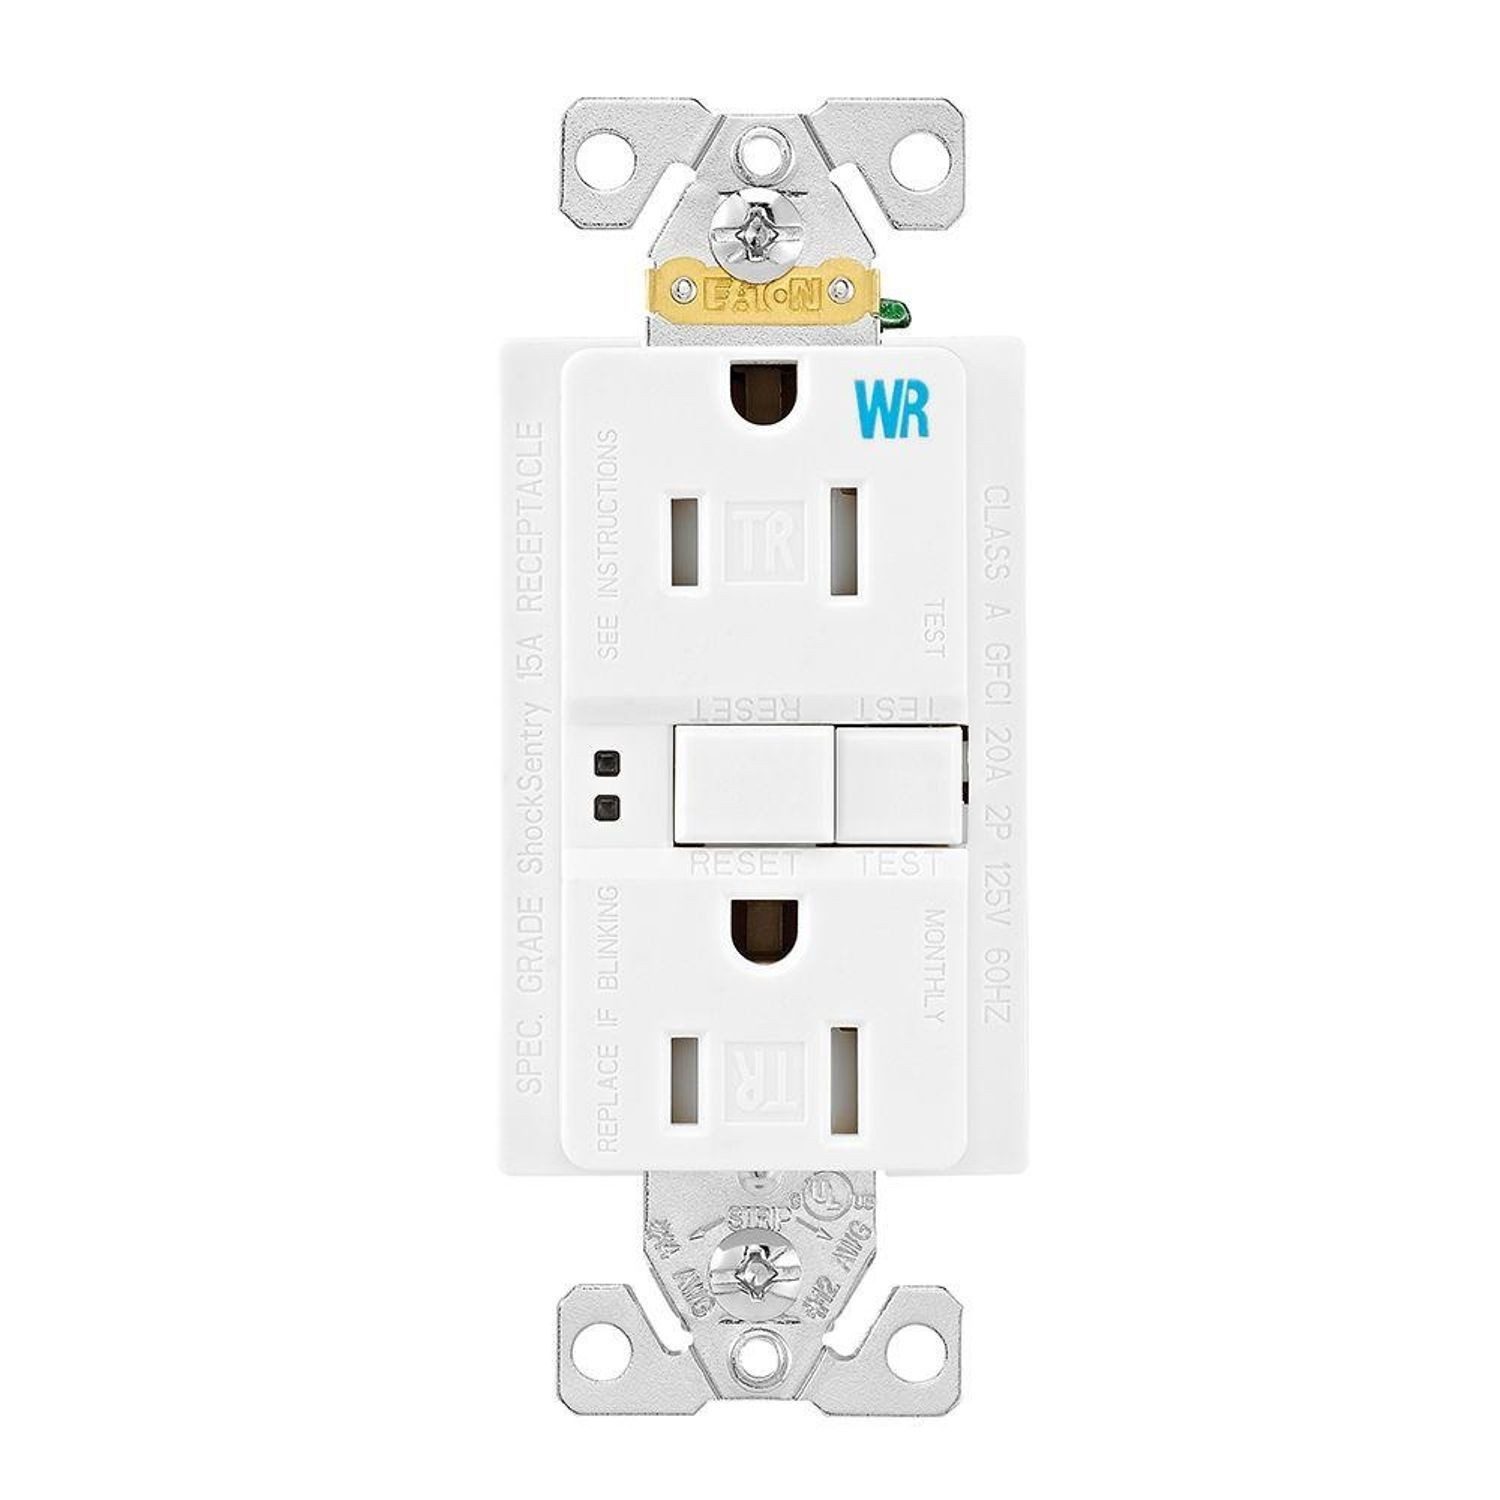 Cooper Wiring Twrsgf15w Duplex Gfci Receptacle 125 Vac 15 A 2 Poles 3 Wires White